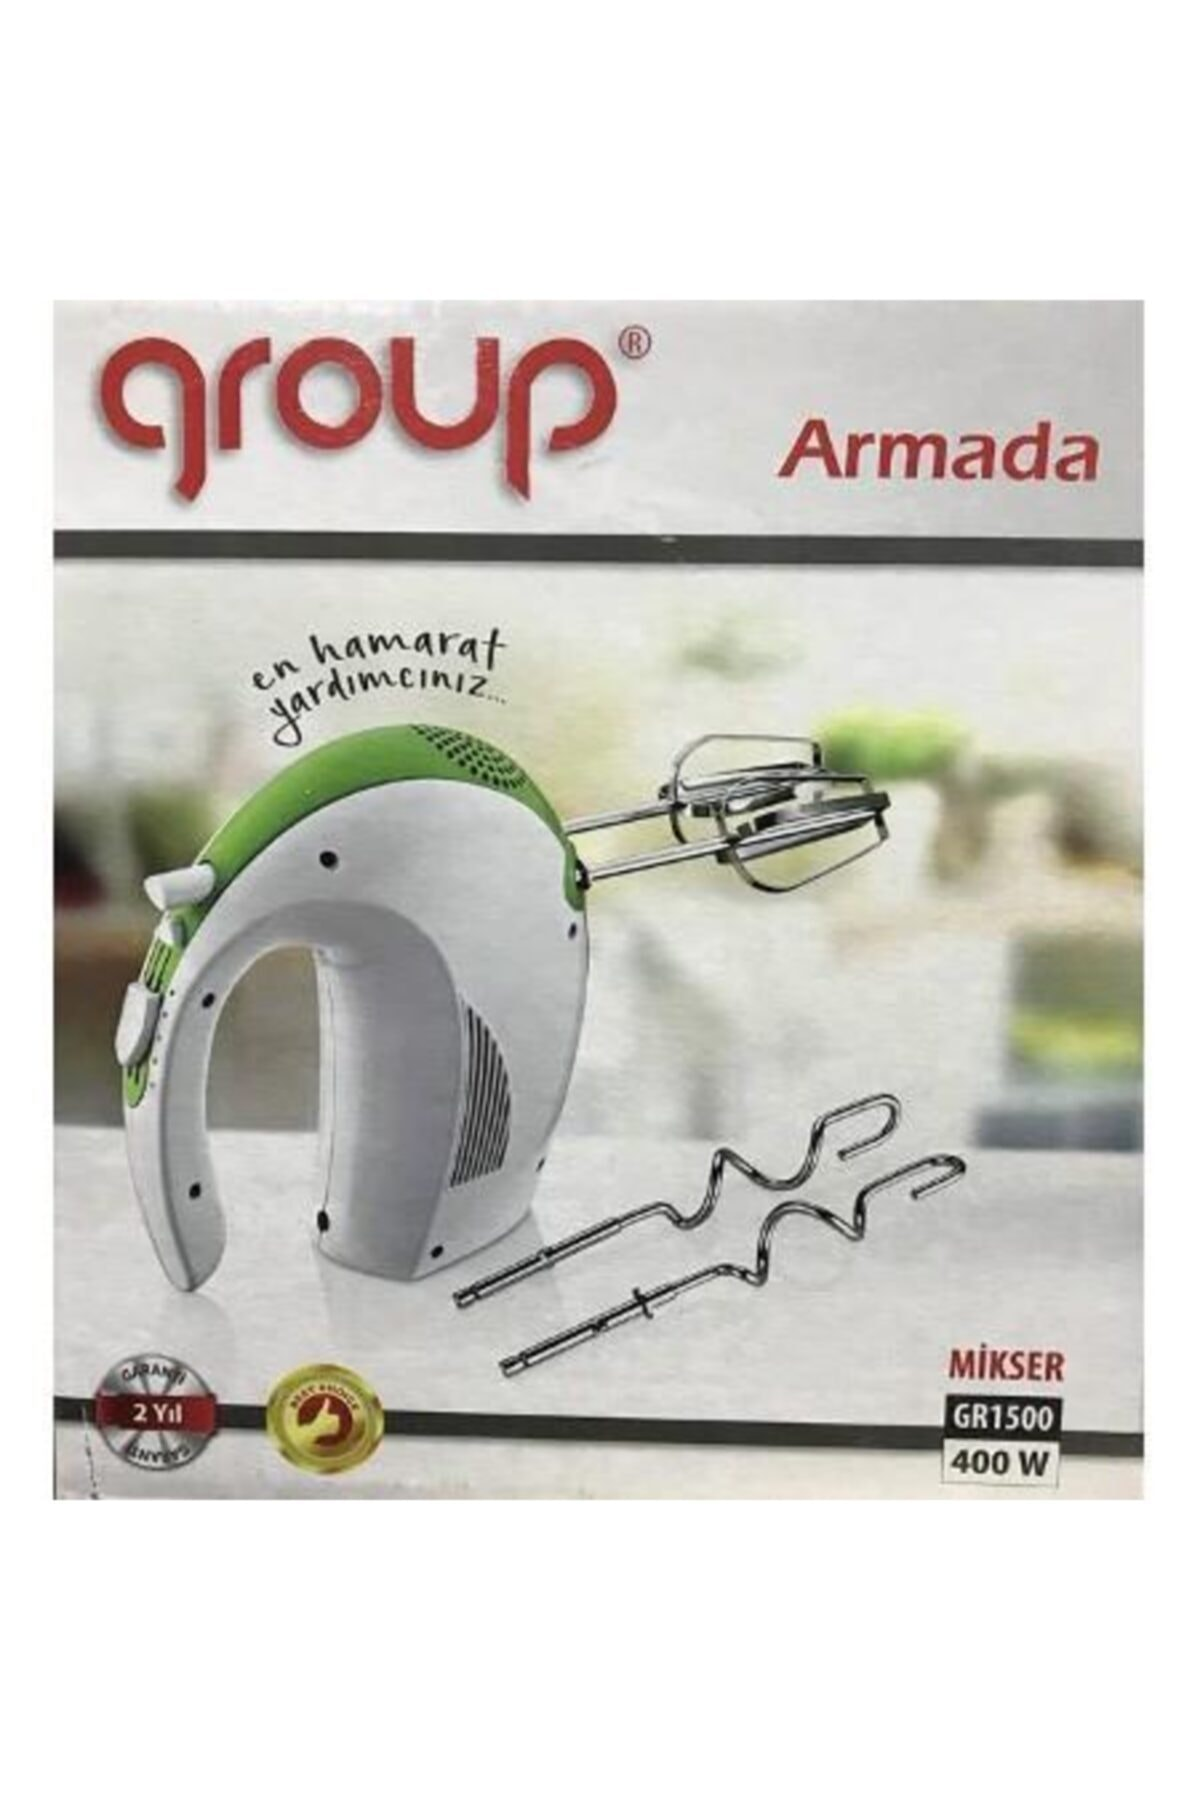 Group Gri Gr 1500 Armada 400 Watt Mikser 2